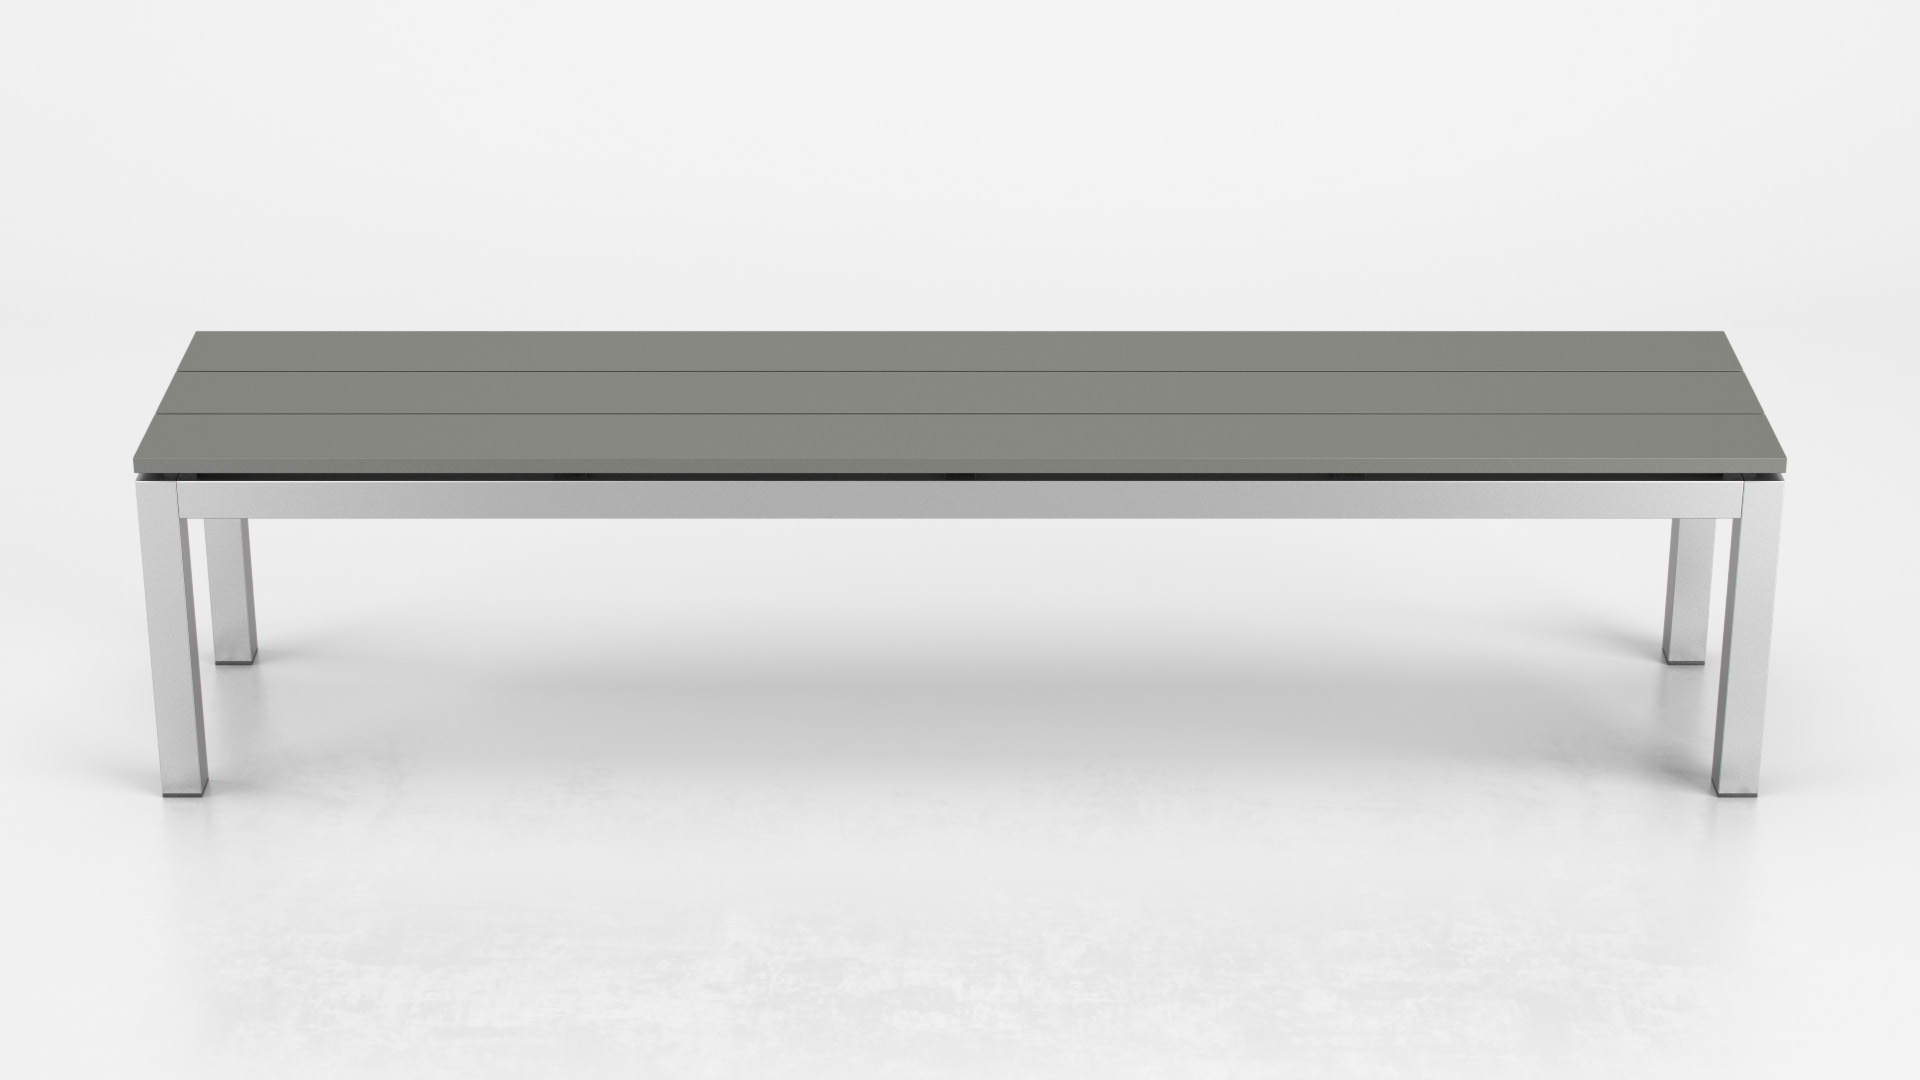 Tribu_NatalTechno_Bench_WhiteSet_01_0004